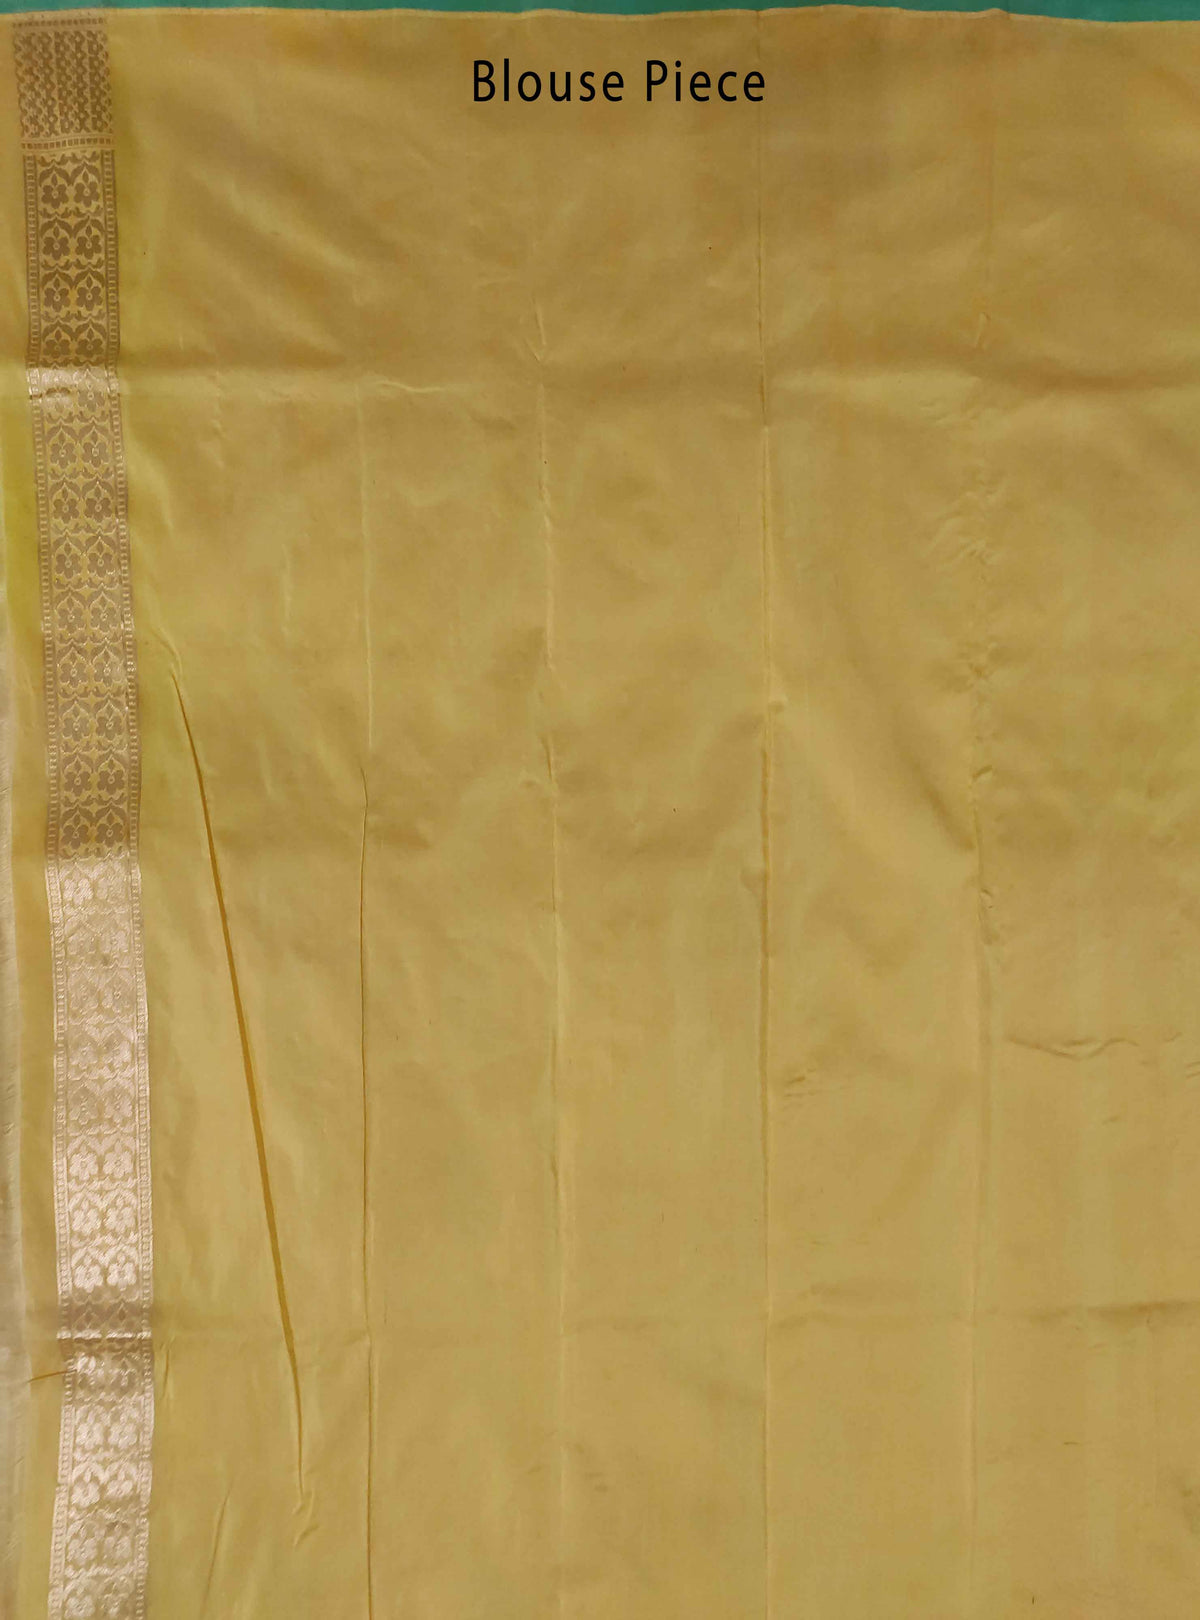 Yellow Katan Silk handloom Banarasi saree with birds booti inside box jaal (4) Blouse Piece